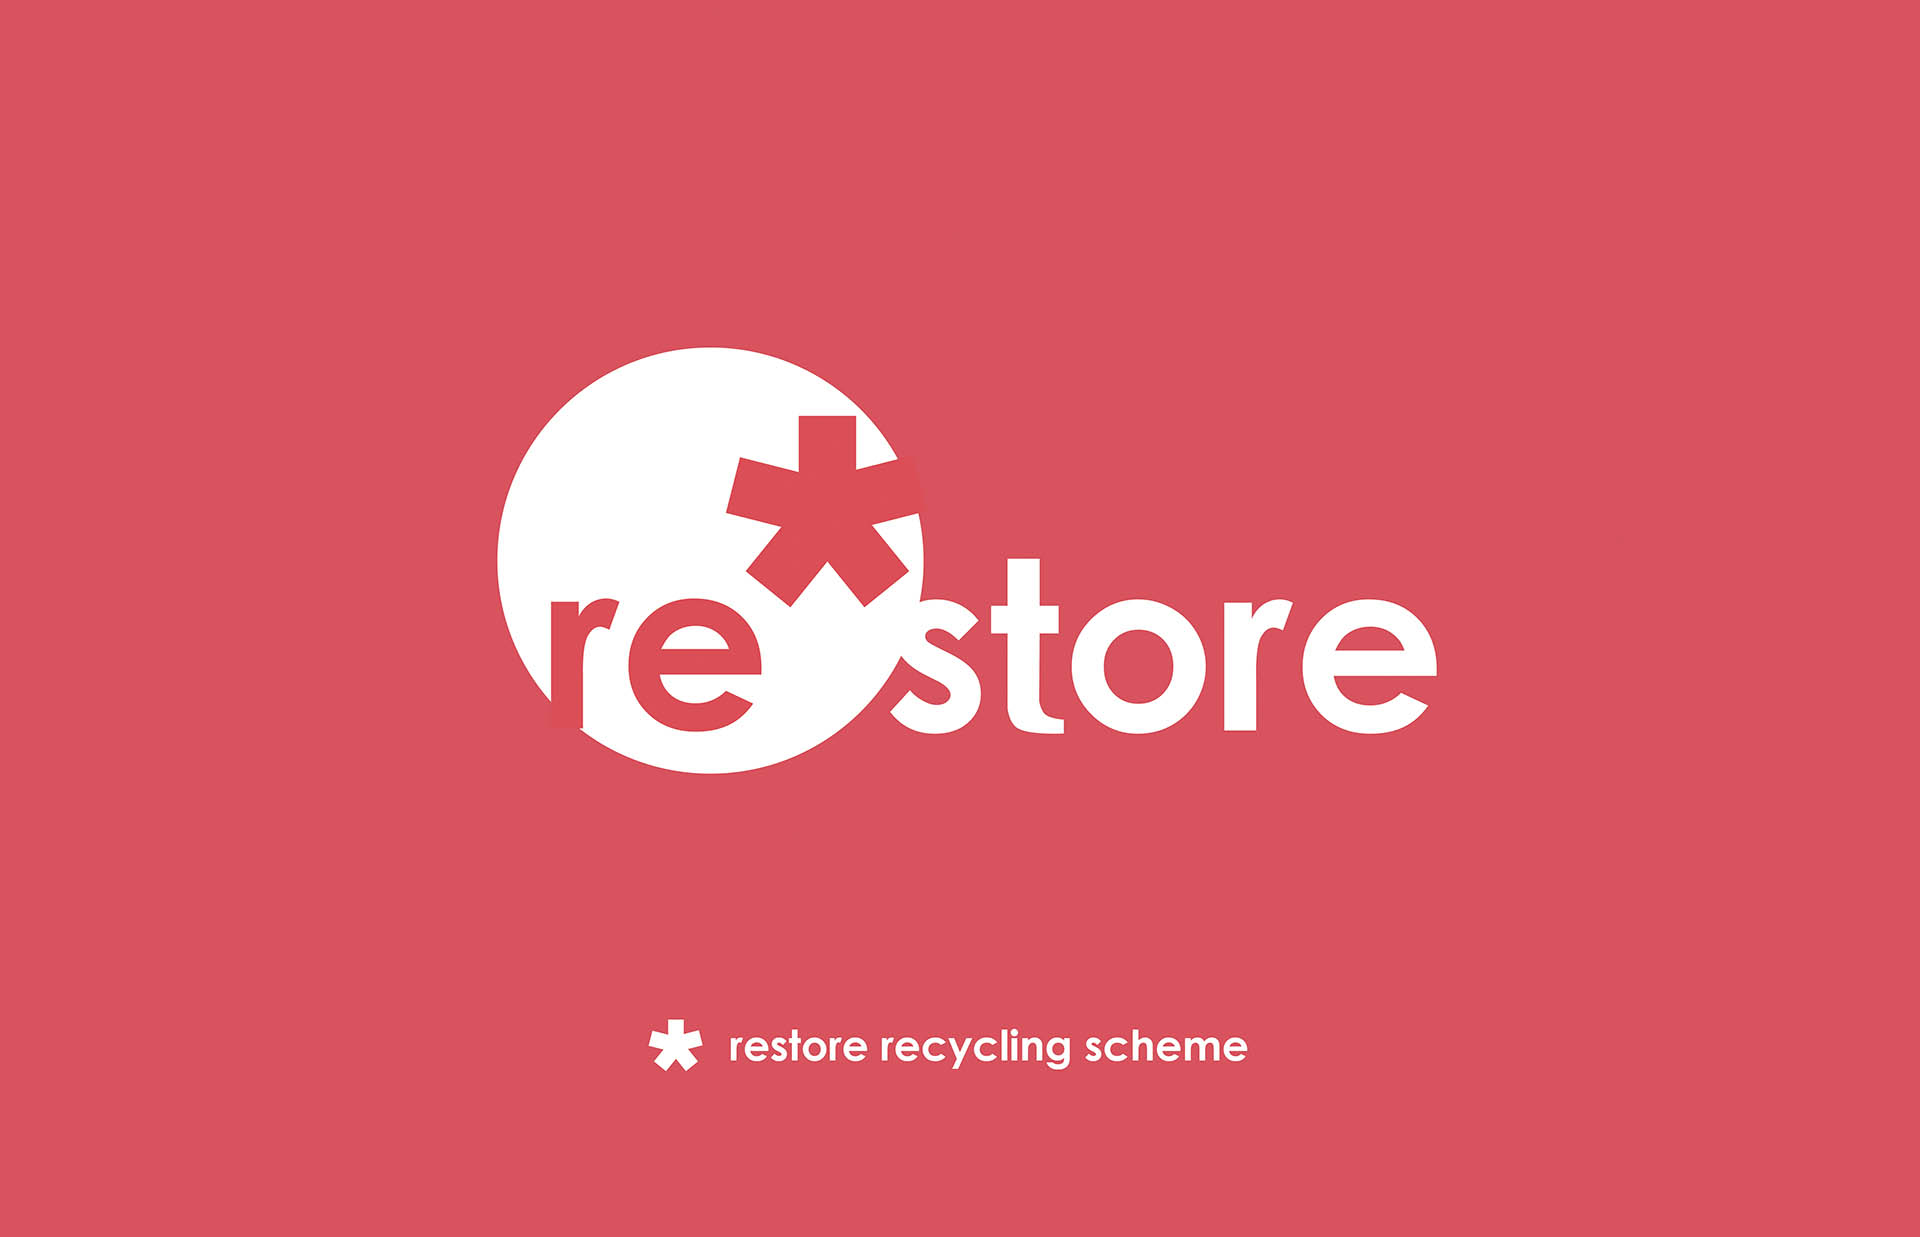 Restore is an environmental friendly store that provides products which can be easily recycled and reused